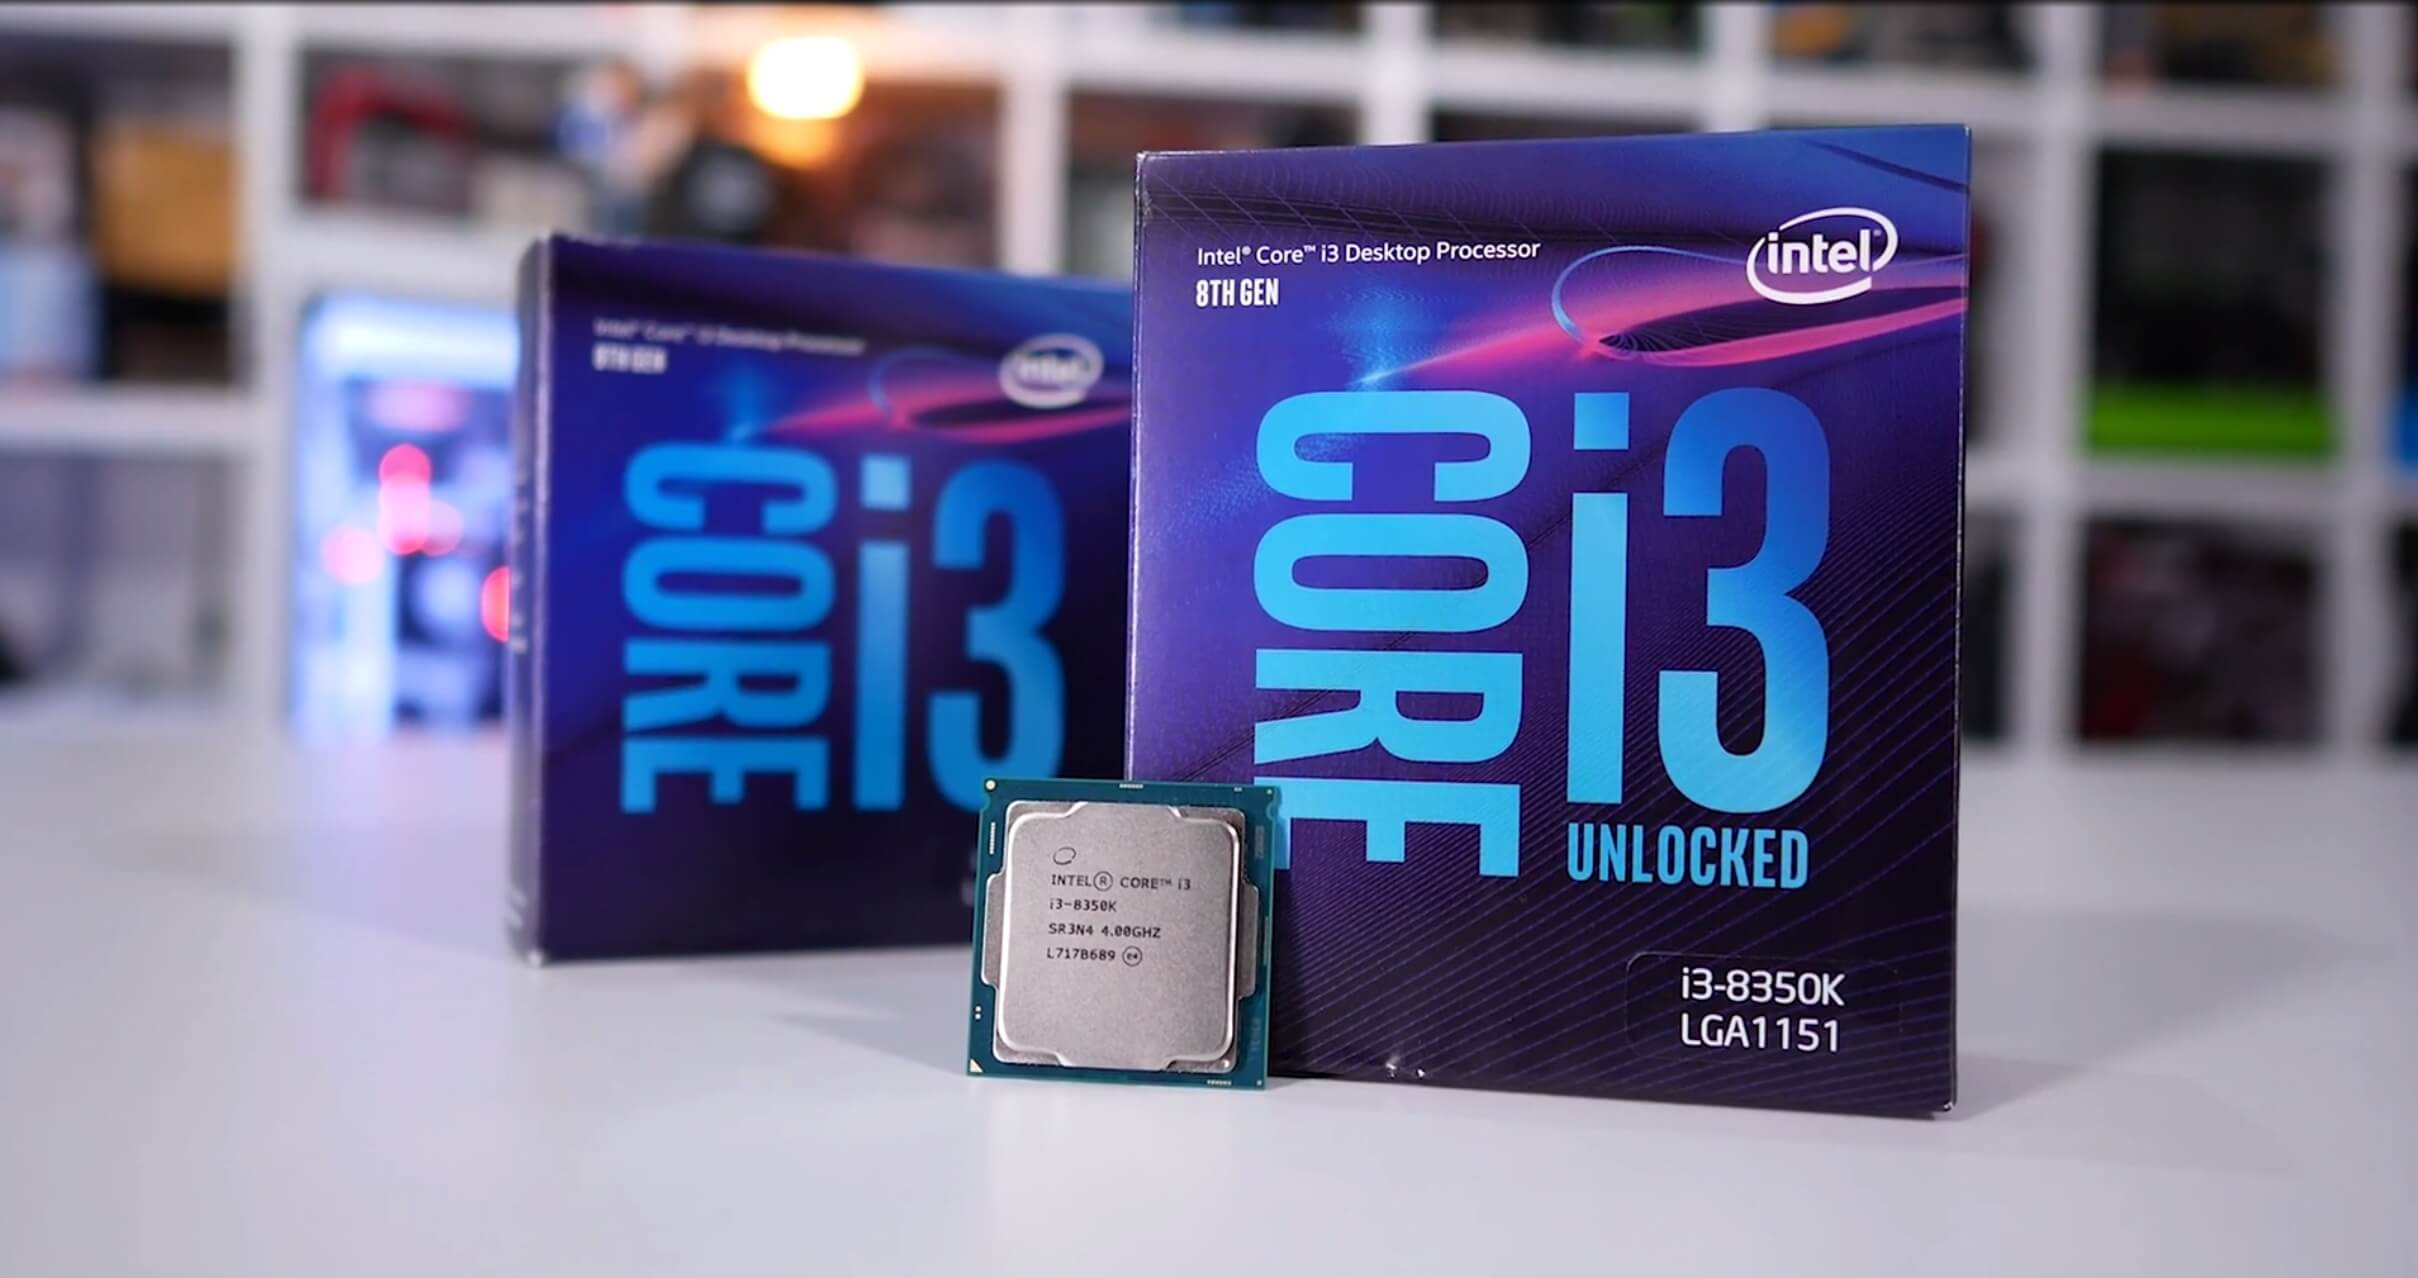 Intel Core i3-8100 and Core i3-8350K Review: RIP Ryzen 3? - TechSpot